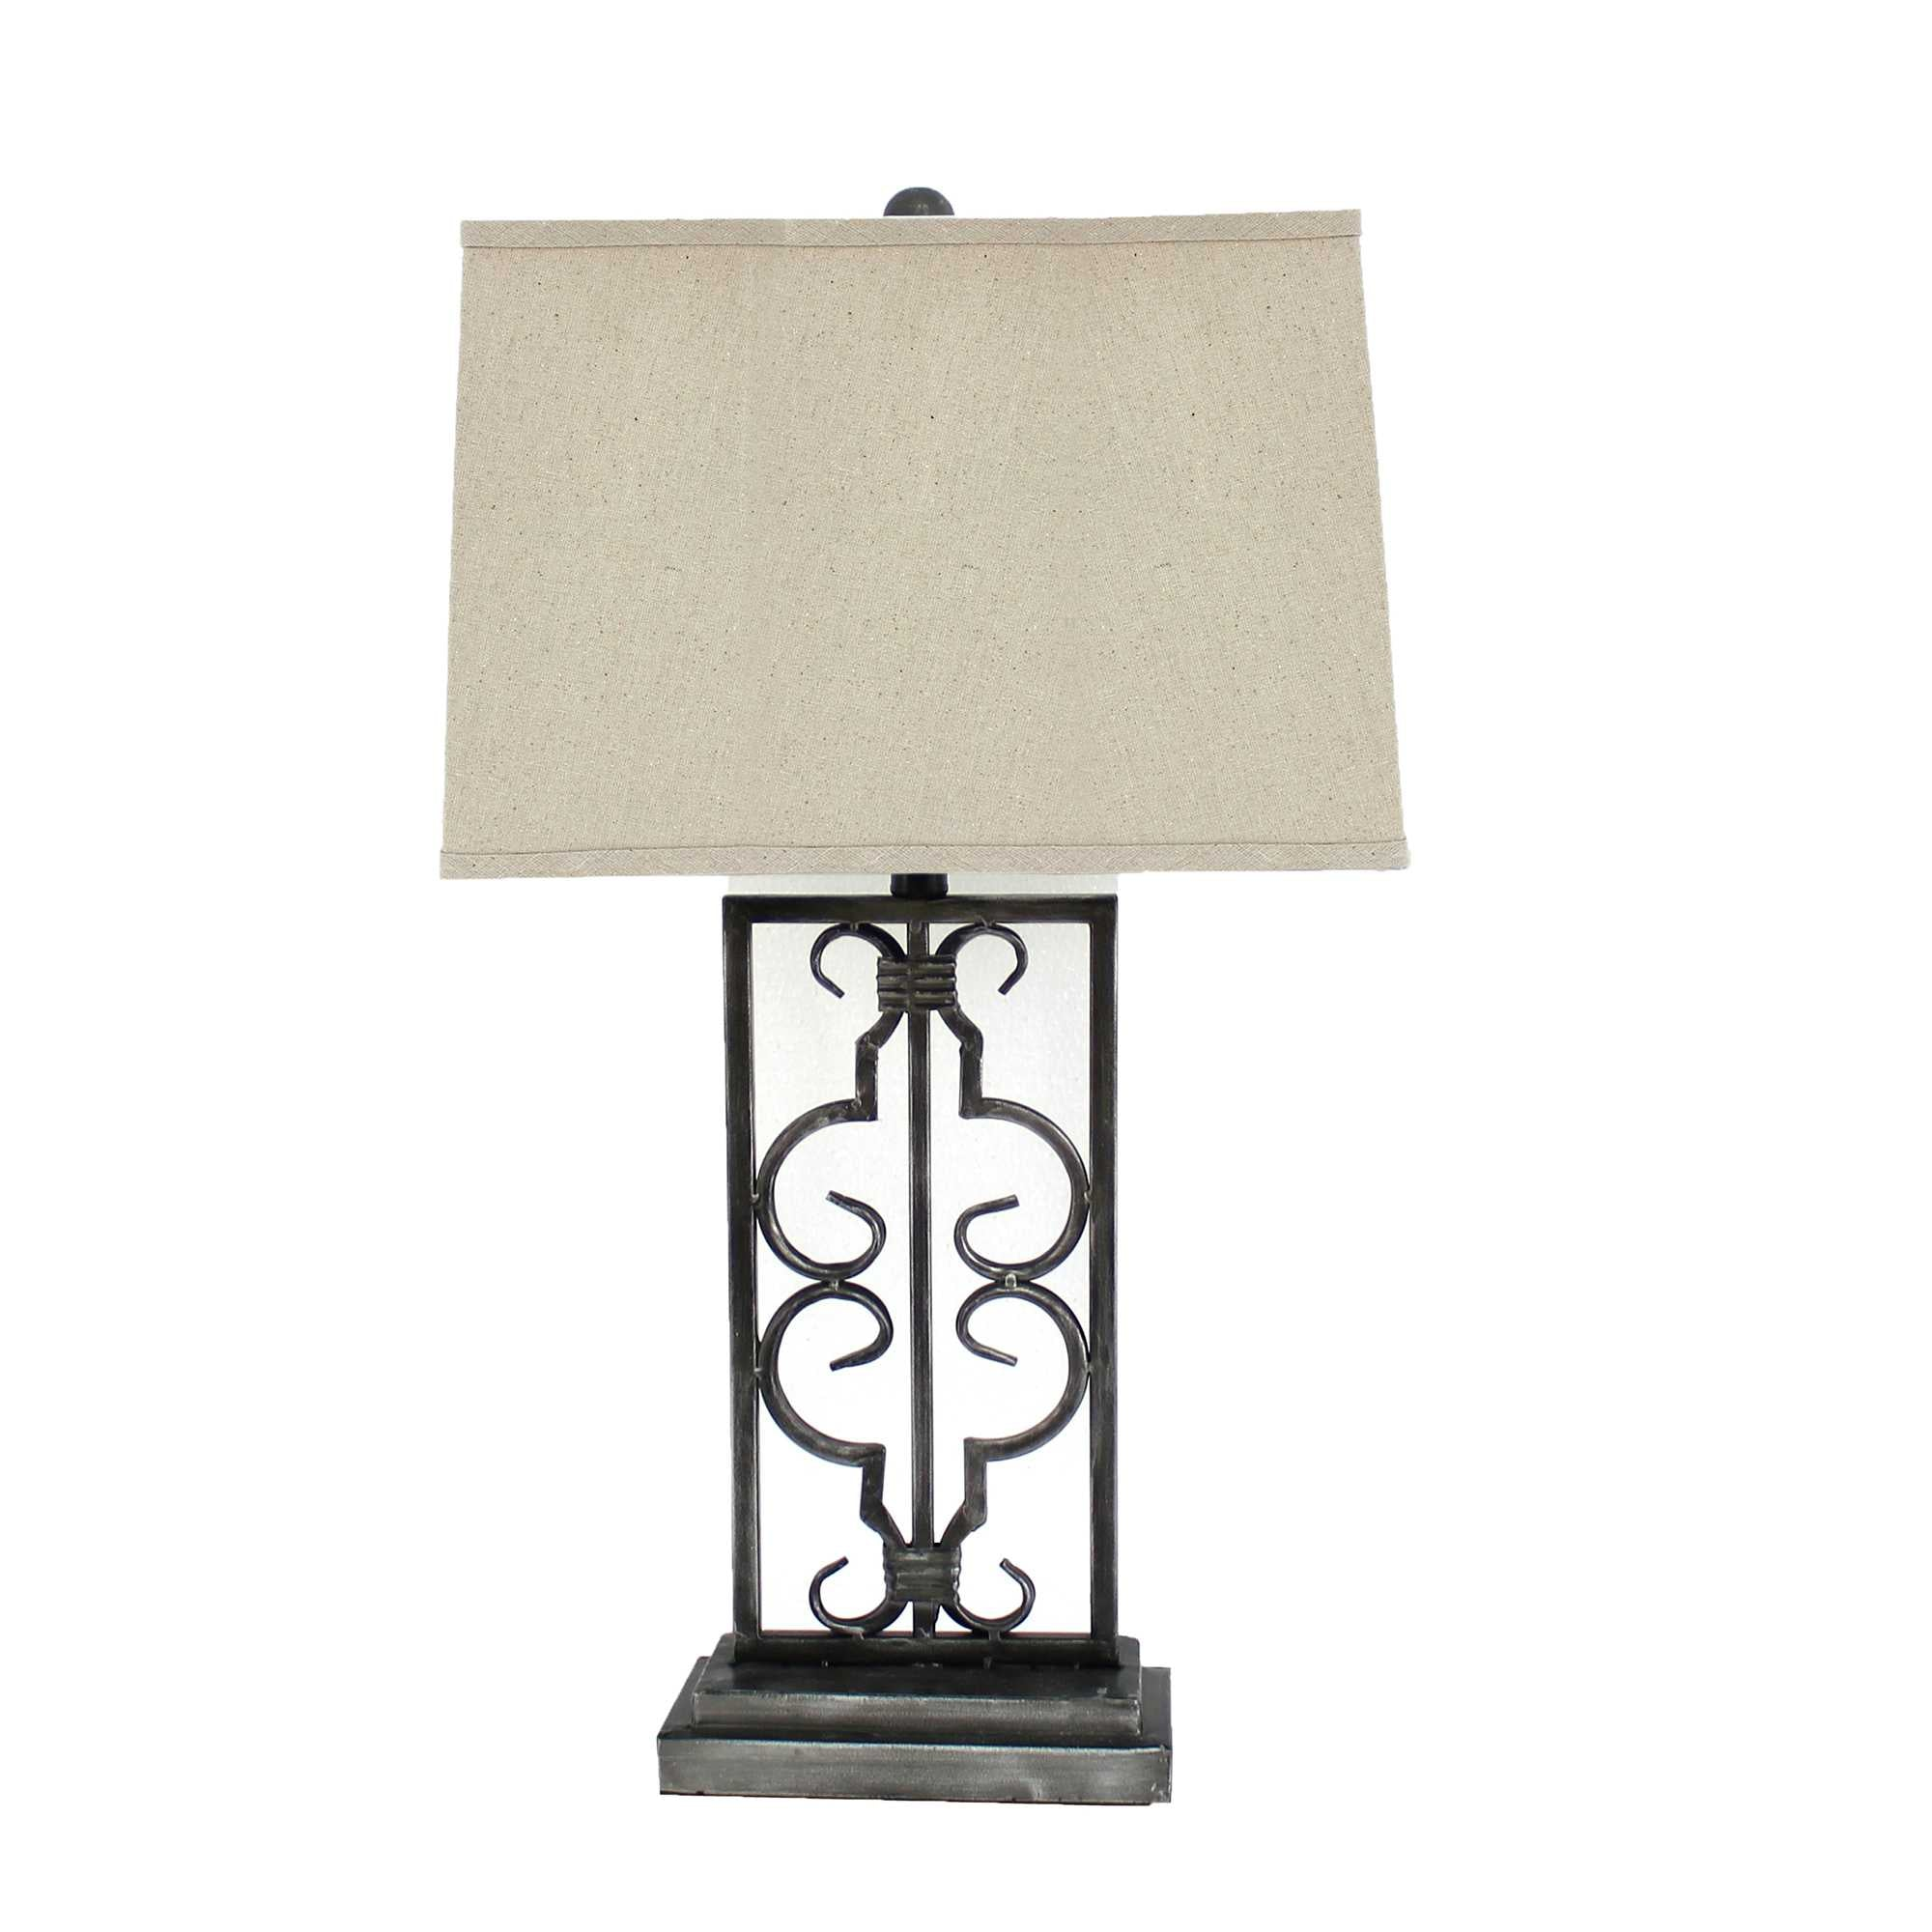 "5.5"" x 9.25"" x 28.75"" Gray, Industrial With Stacked Metal Pedestal - Table Lamp"